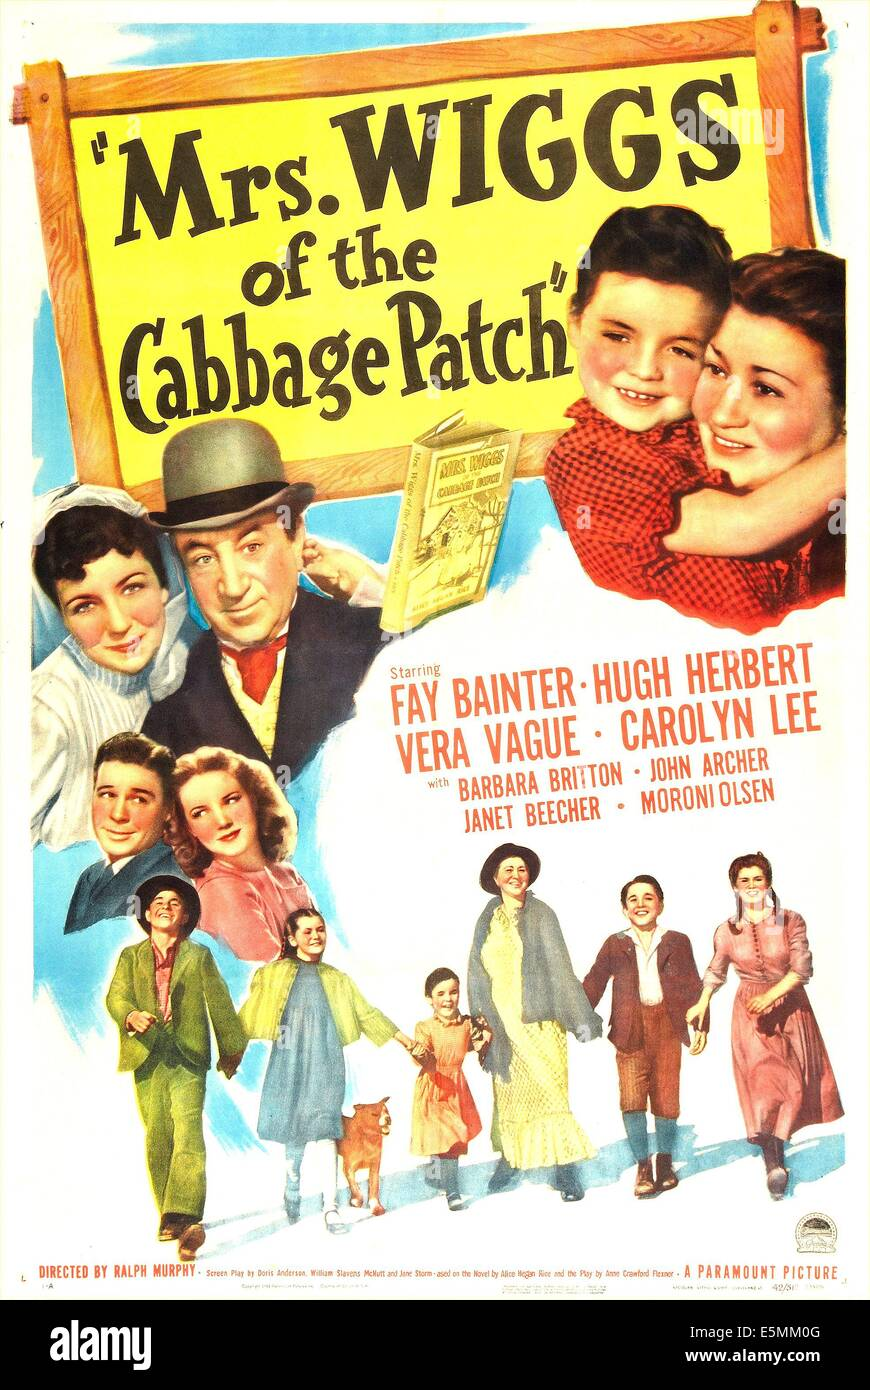 MRS. WIGGS OF THE CABBAGE PATCH, US poster, middle from left: Vera Vague, Hugh Herbert, Carolyn Lee, Fay Bainter, - Stock Image